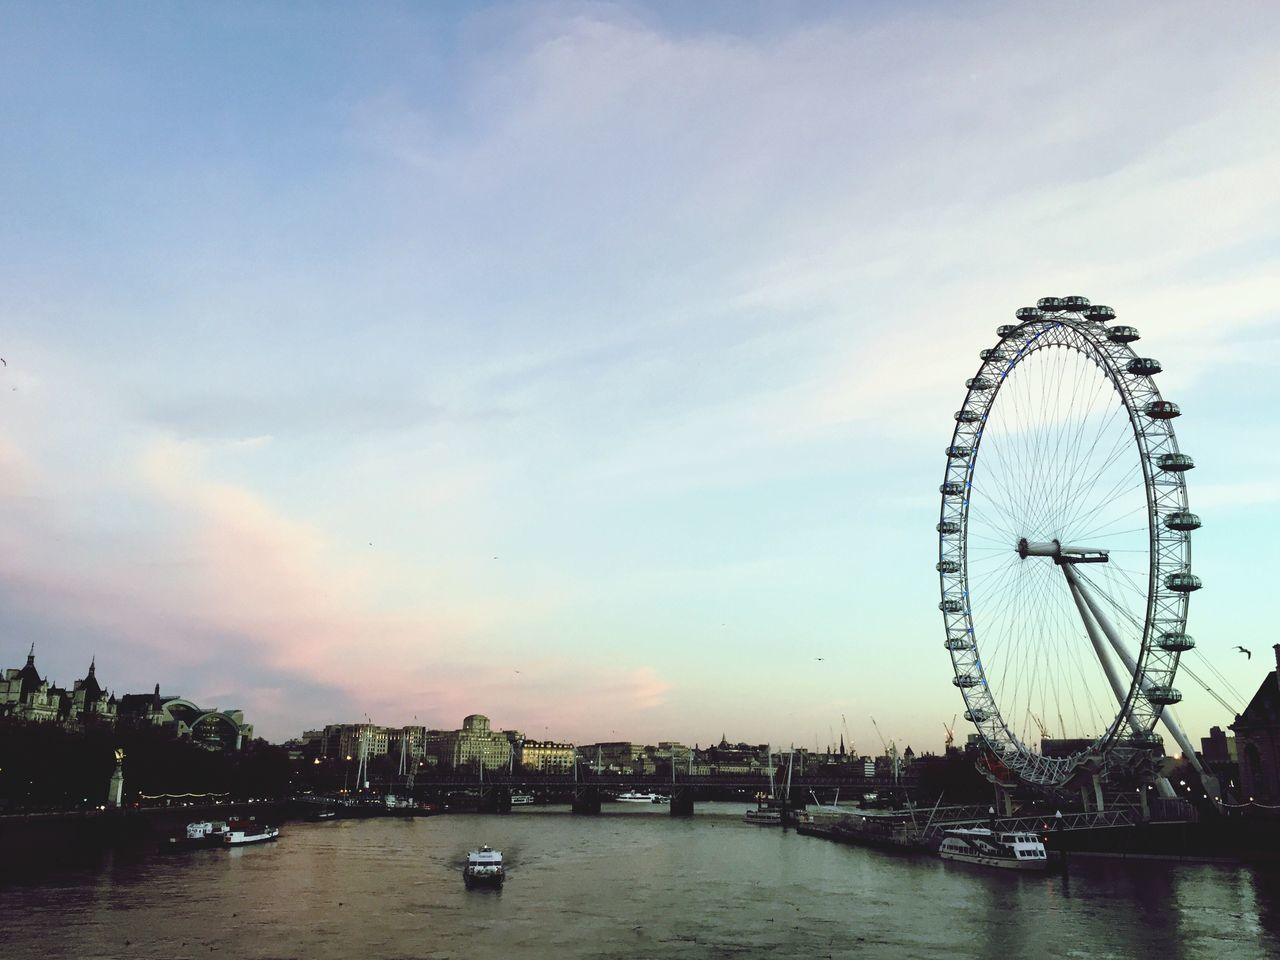 ferris wheel, sky, cloud - sky, arts culture and entertainment, water, nautical vessel, big wheel, travel destinations, outdoors, river, waterfront, built structure, sunset, architecture, building exterior, no people, day, city